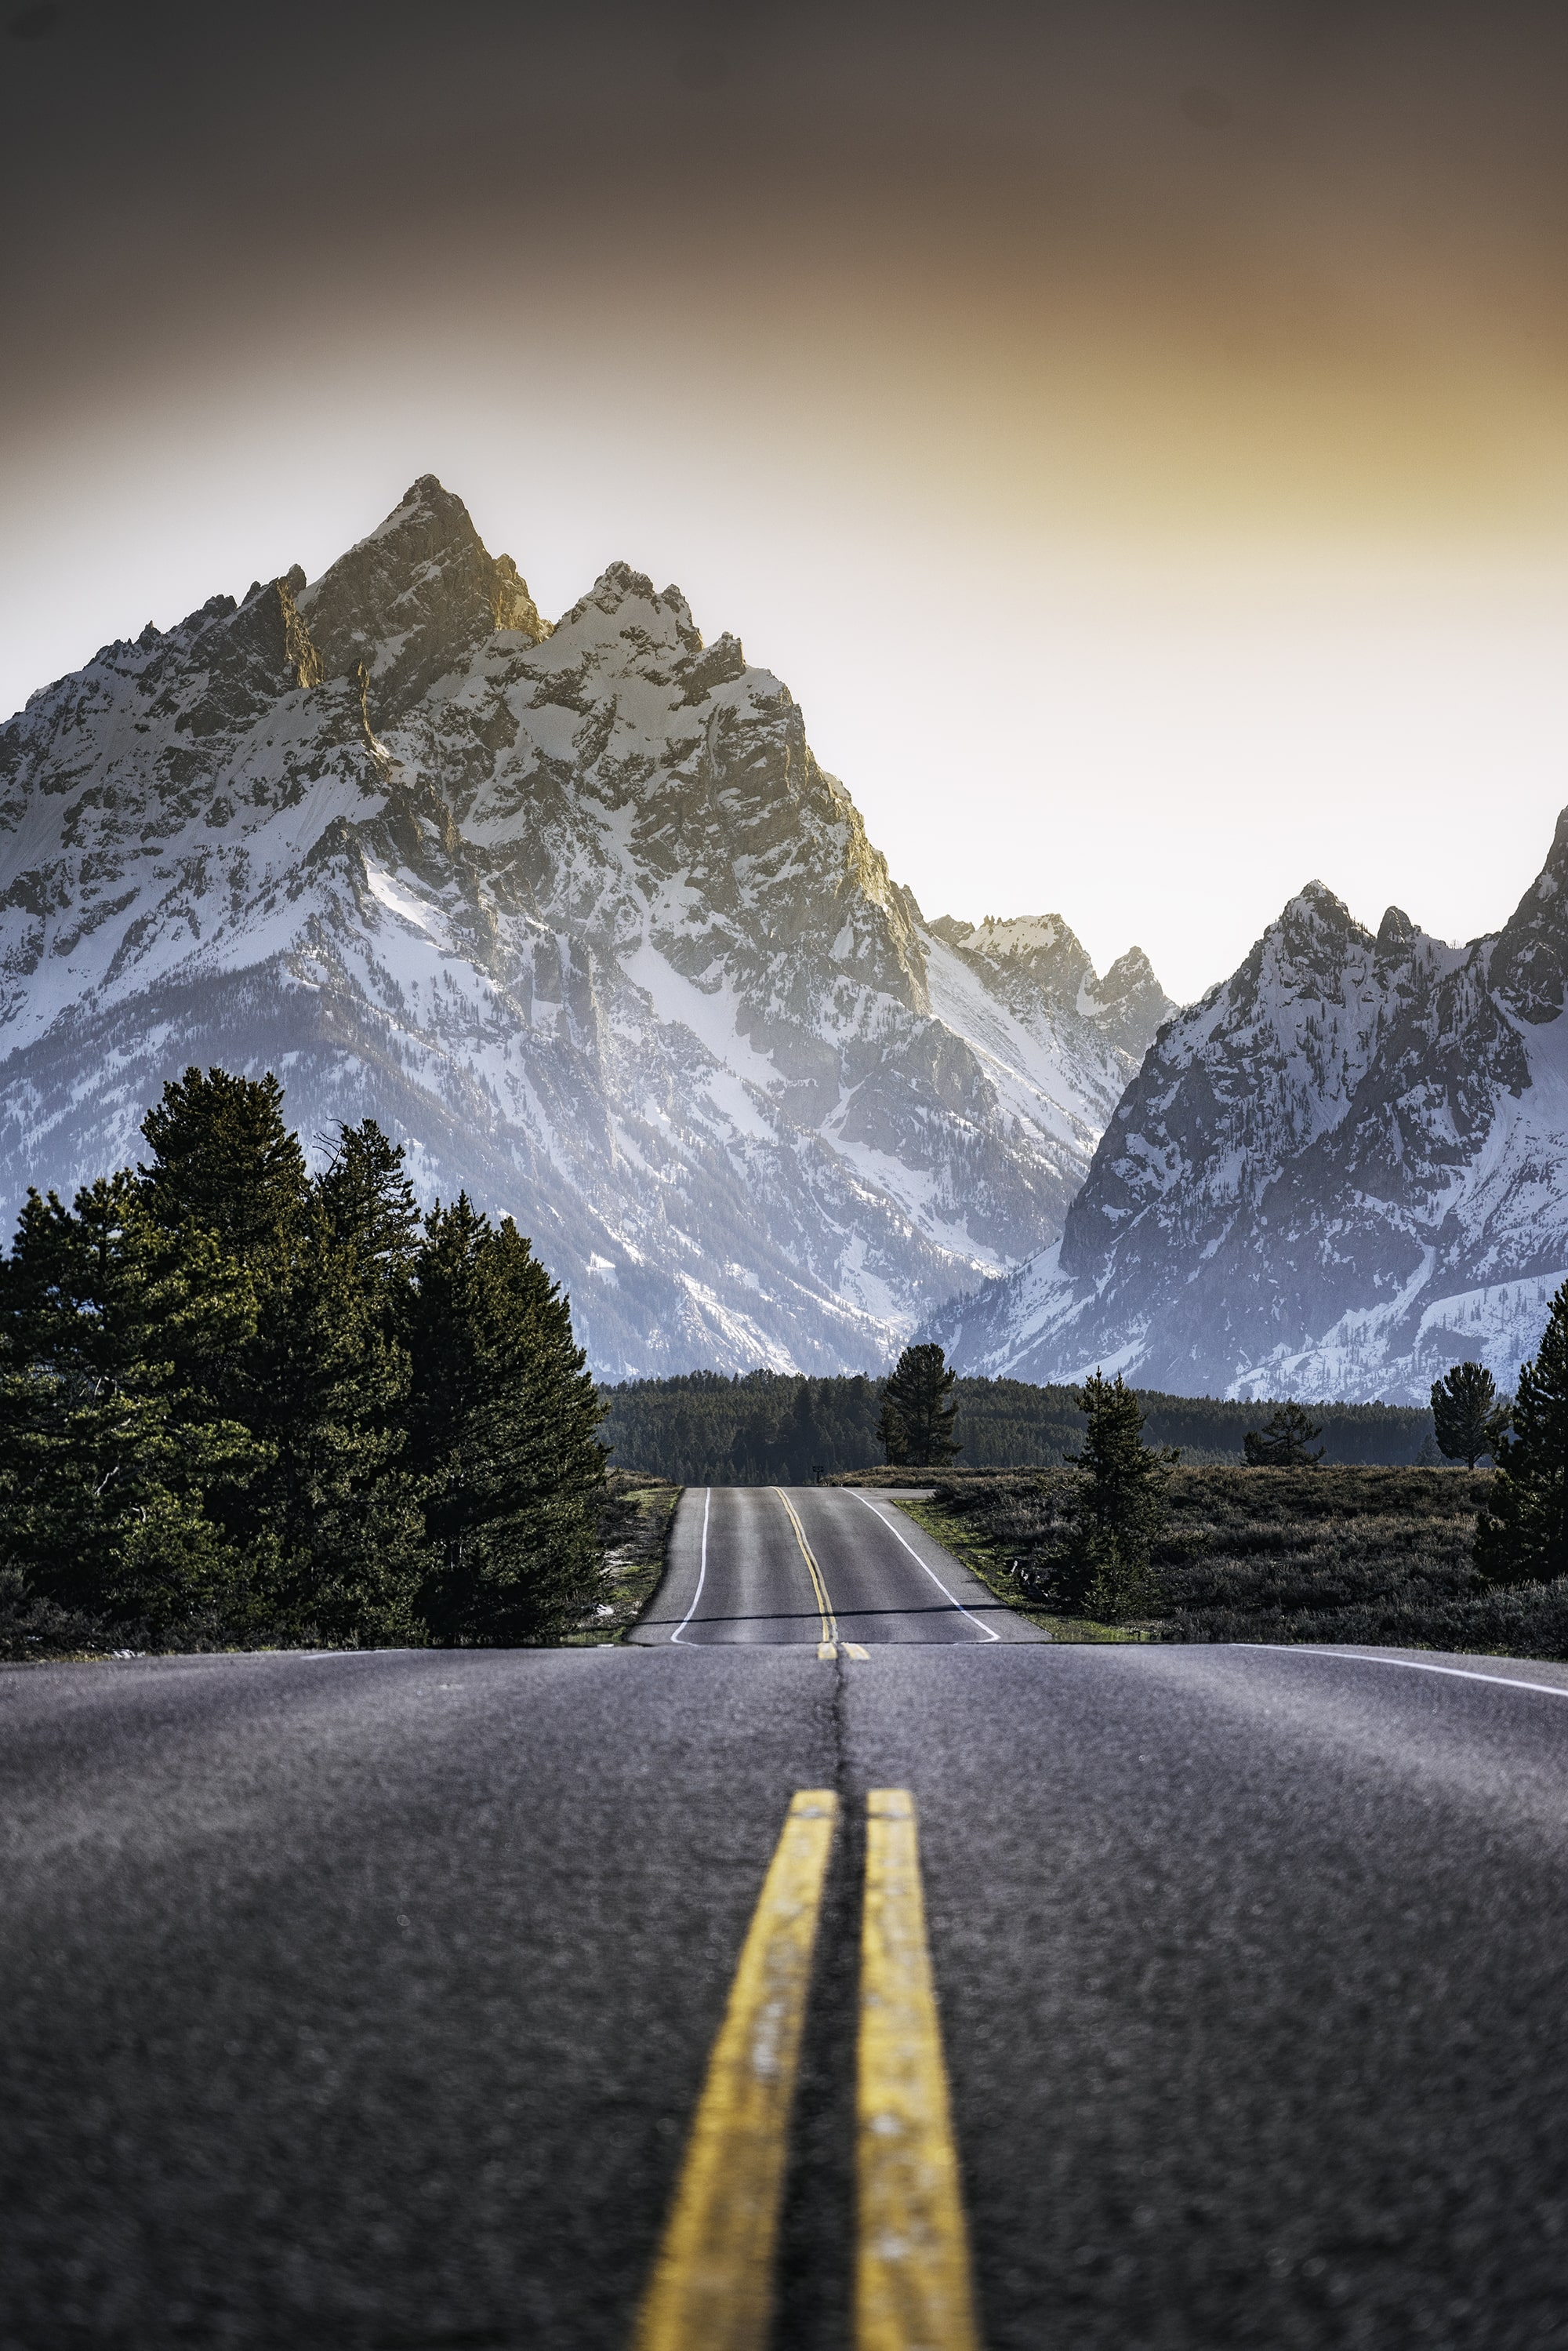 Shot from the middle of the road leading to a snowy mountain